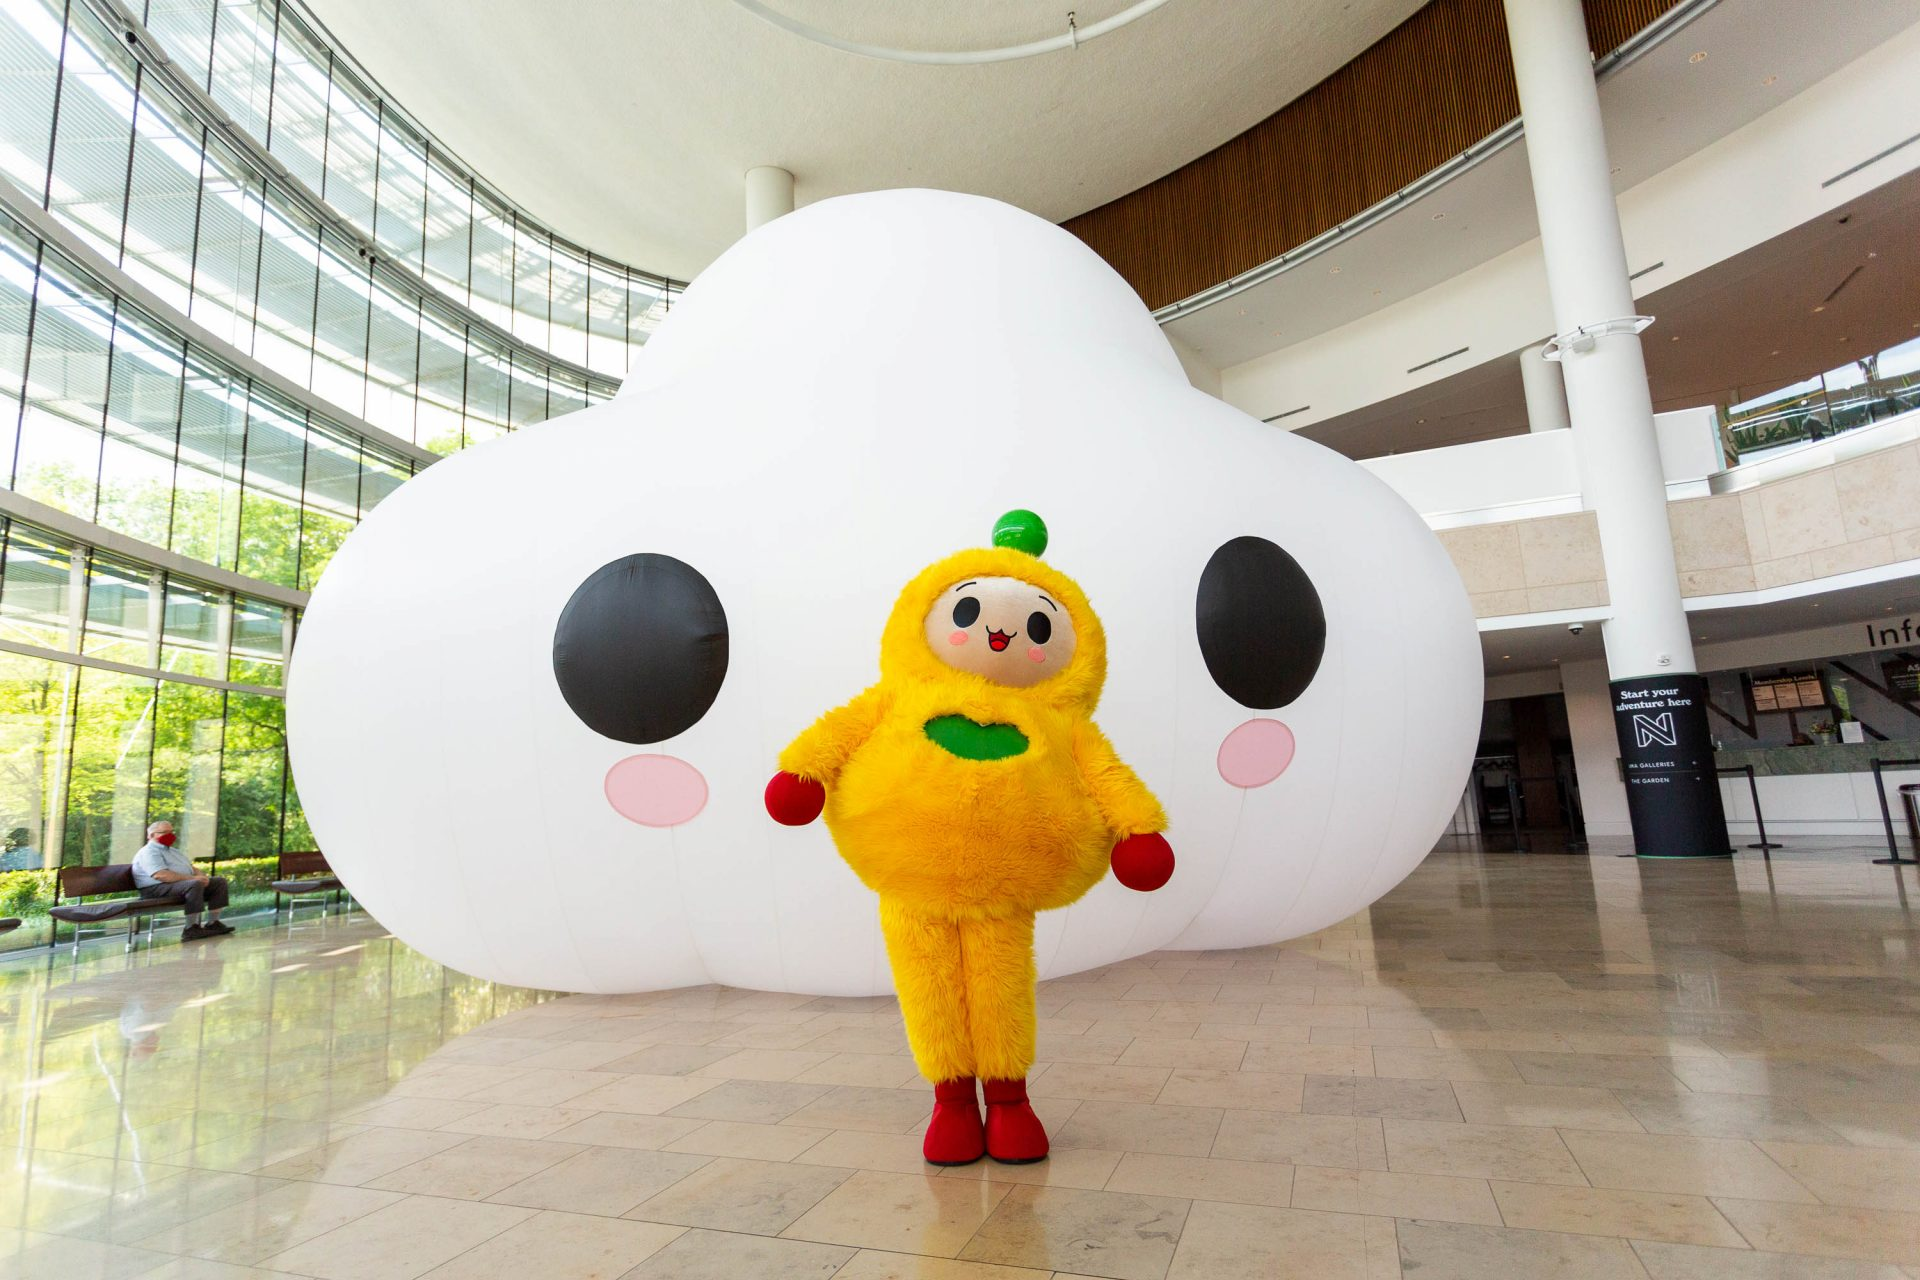 """Photo courtesy of Indianapolis Museum of Art at Newfields. """"Little Cloud"""" & """"Peanut Butter"""", 2021, Commissioned by the Indianapolis Museum of Art at Newfields"""